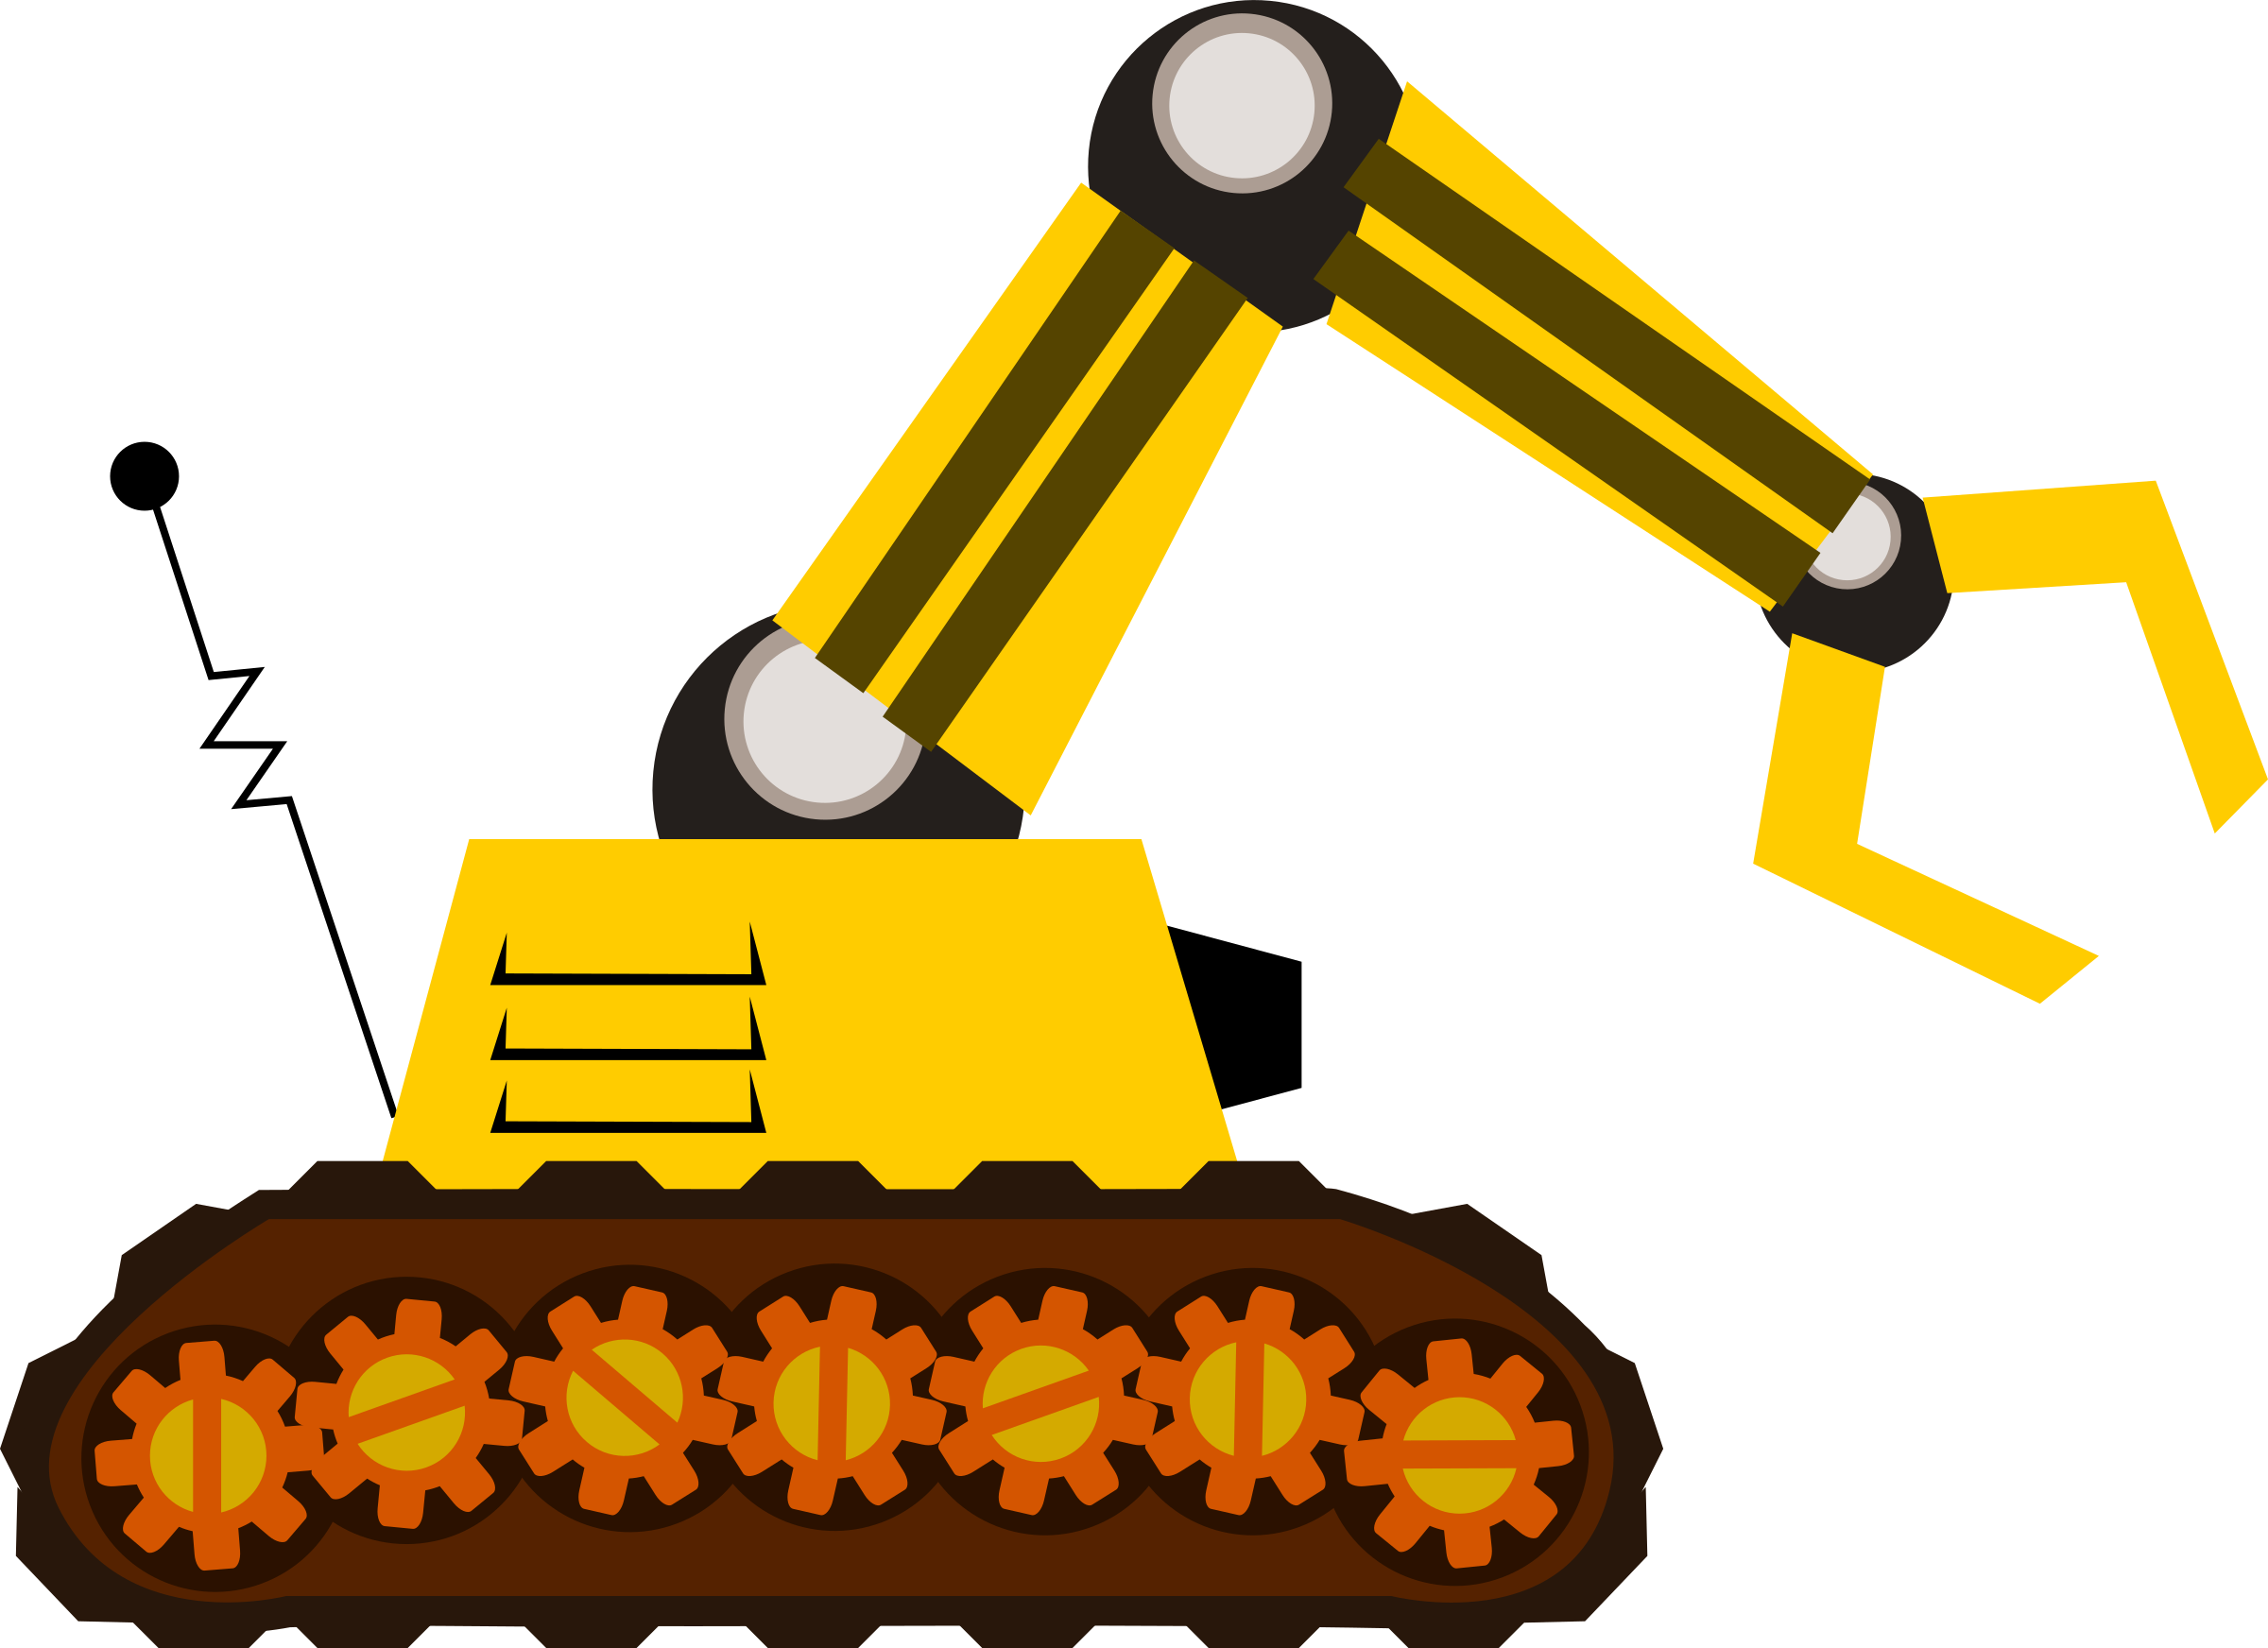 2400x1744 Robot Claw Clipart Amp Robot Claw Clip Art Images